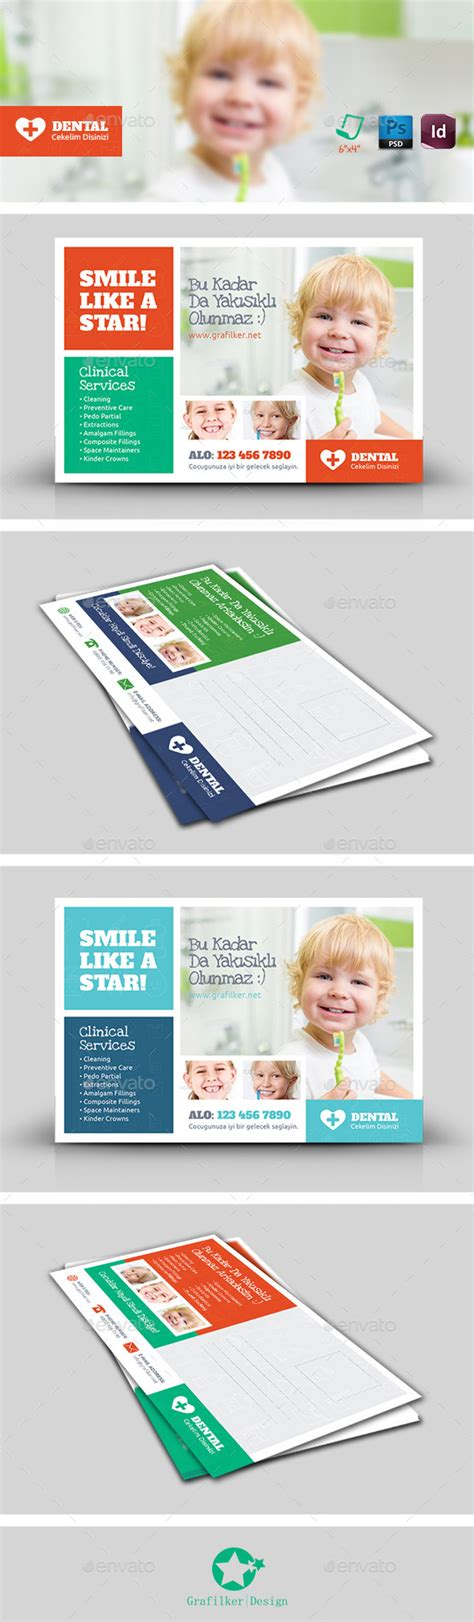 Arrow Templates Free For Kids 187 Tinkytyler Org Stock Photos Graphics Dental Postcards Templates